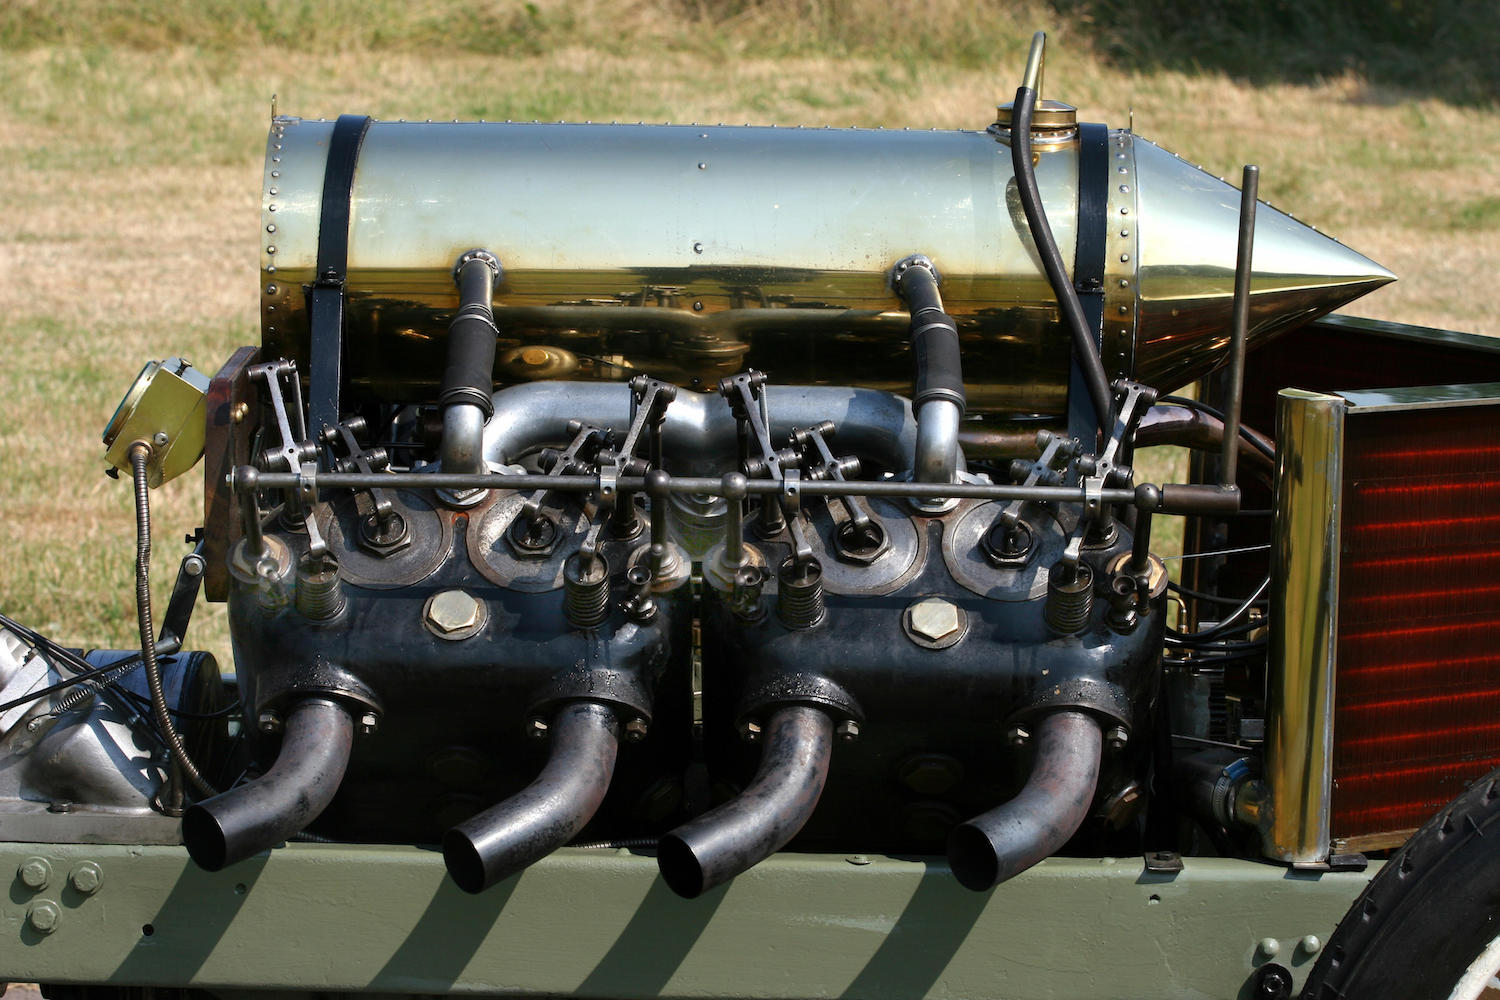 1905 Darracq Sprint Two-Seater engine